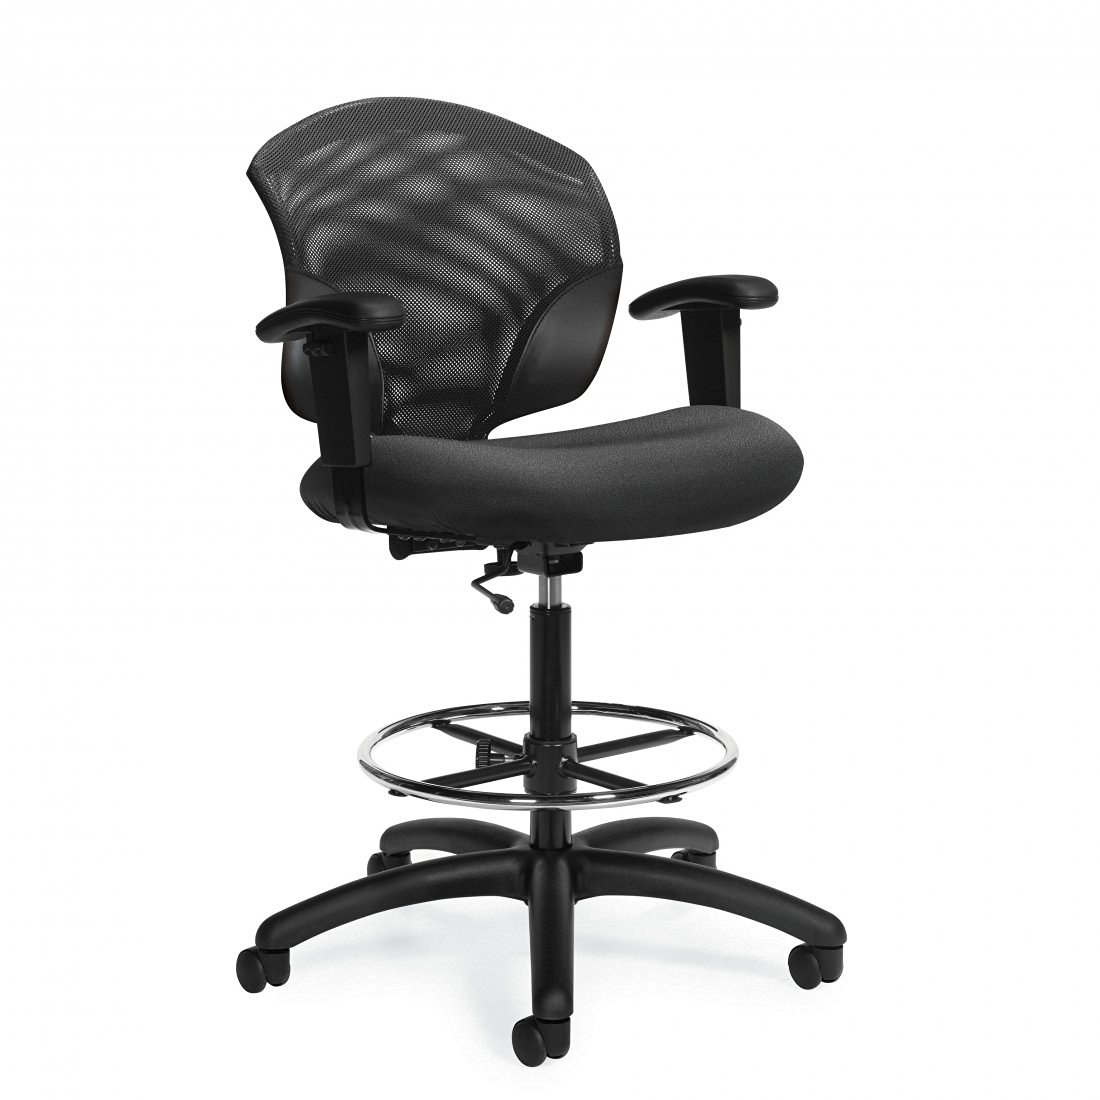 size english stool fice for full luxury fresh desk chair saddle of ergonomic standing medical or